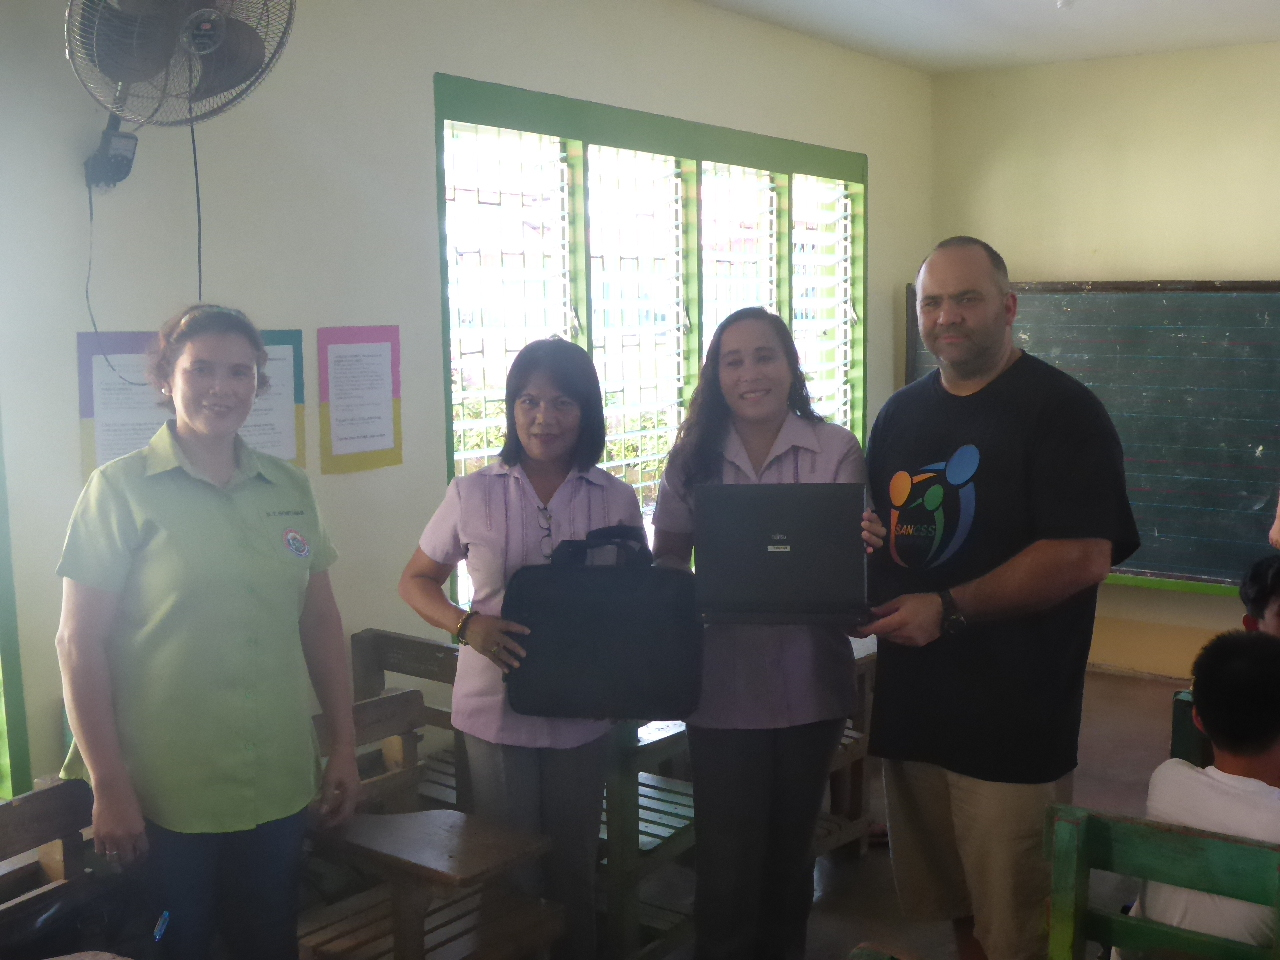 laptop-presentation-elementary-school